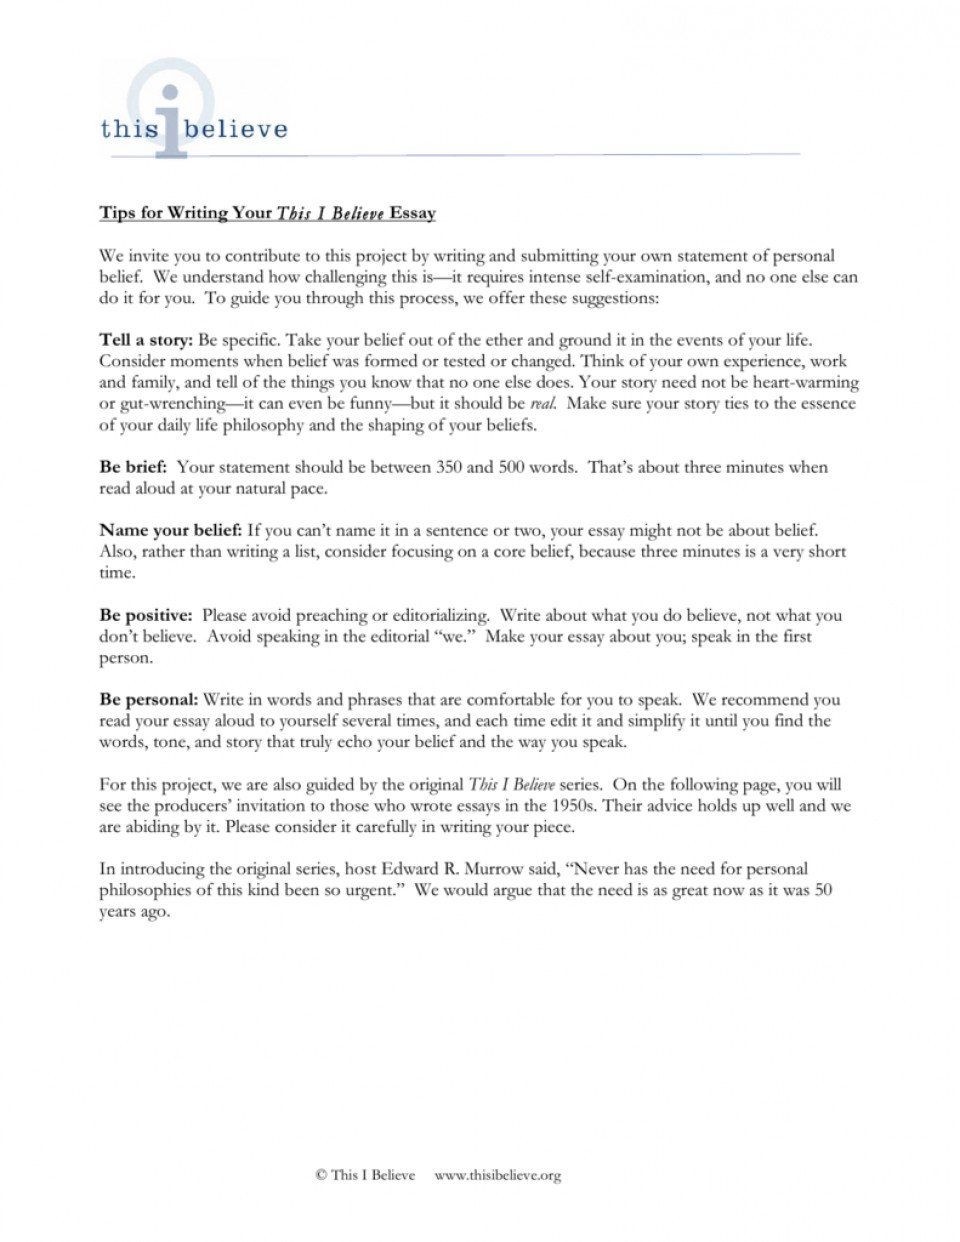 005 Essay Example How To Write This I Believe 008807221 1 Fantastic A What On Things 960